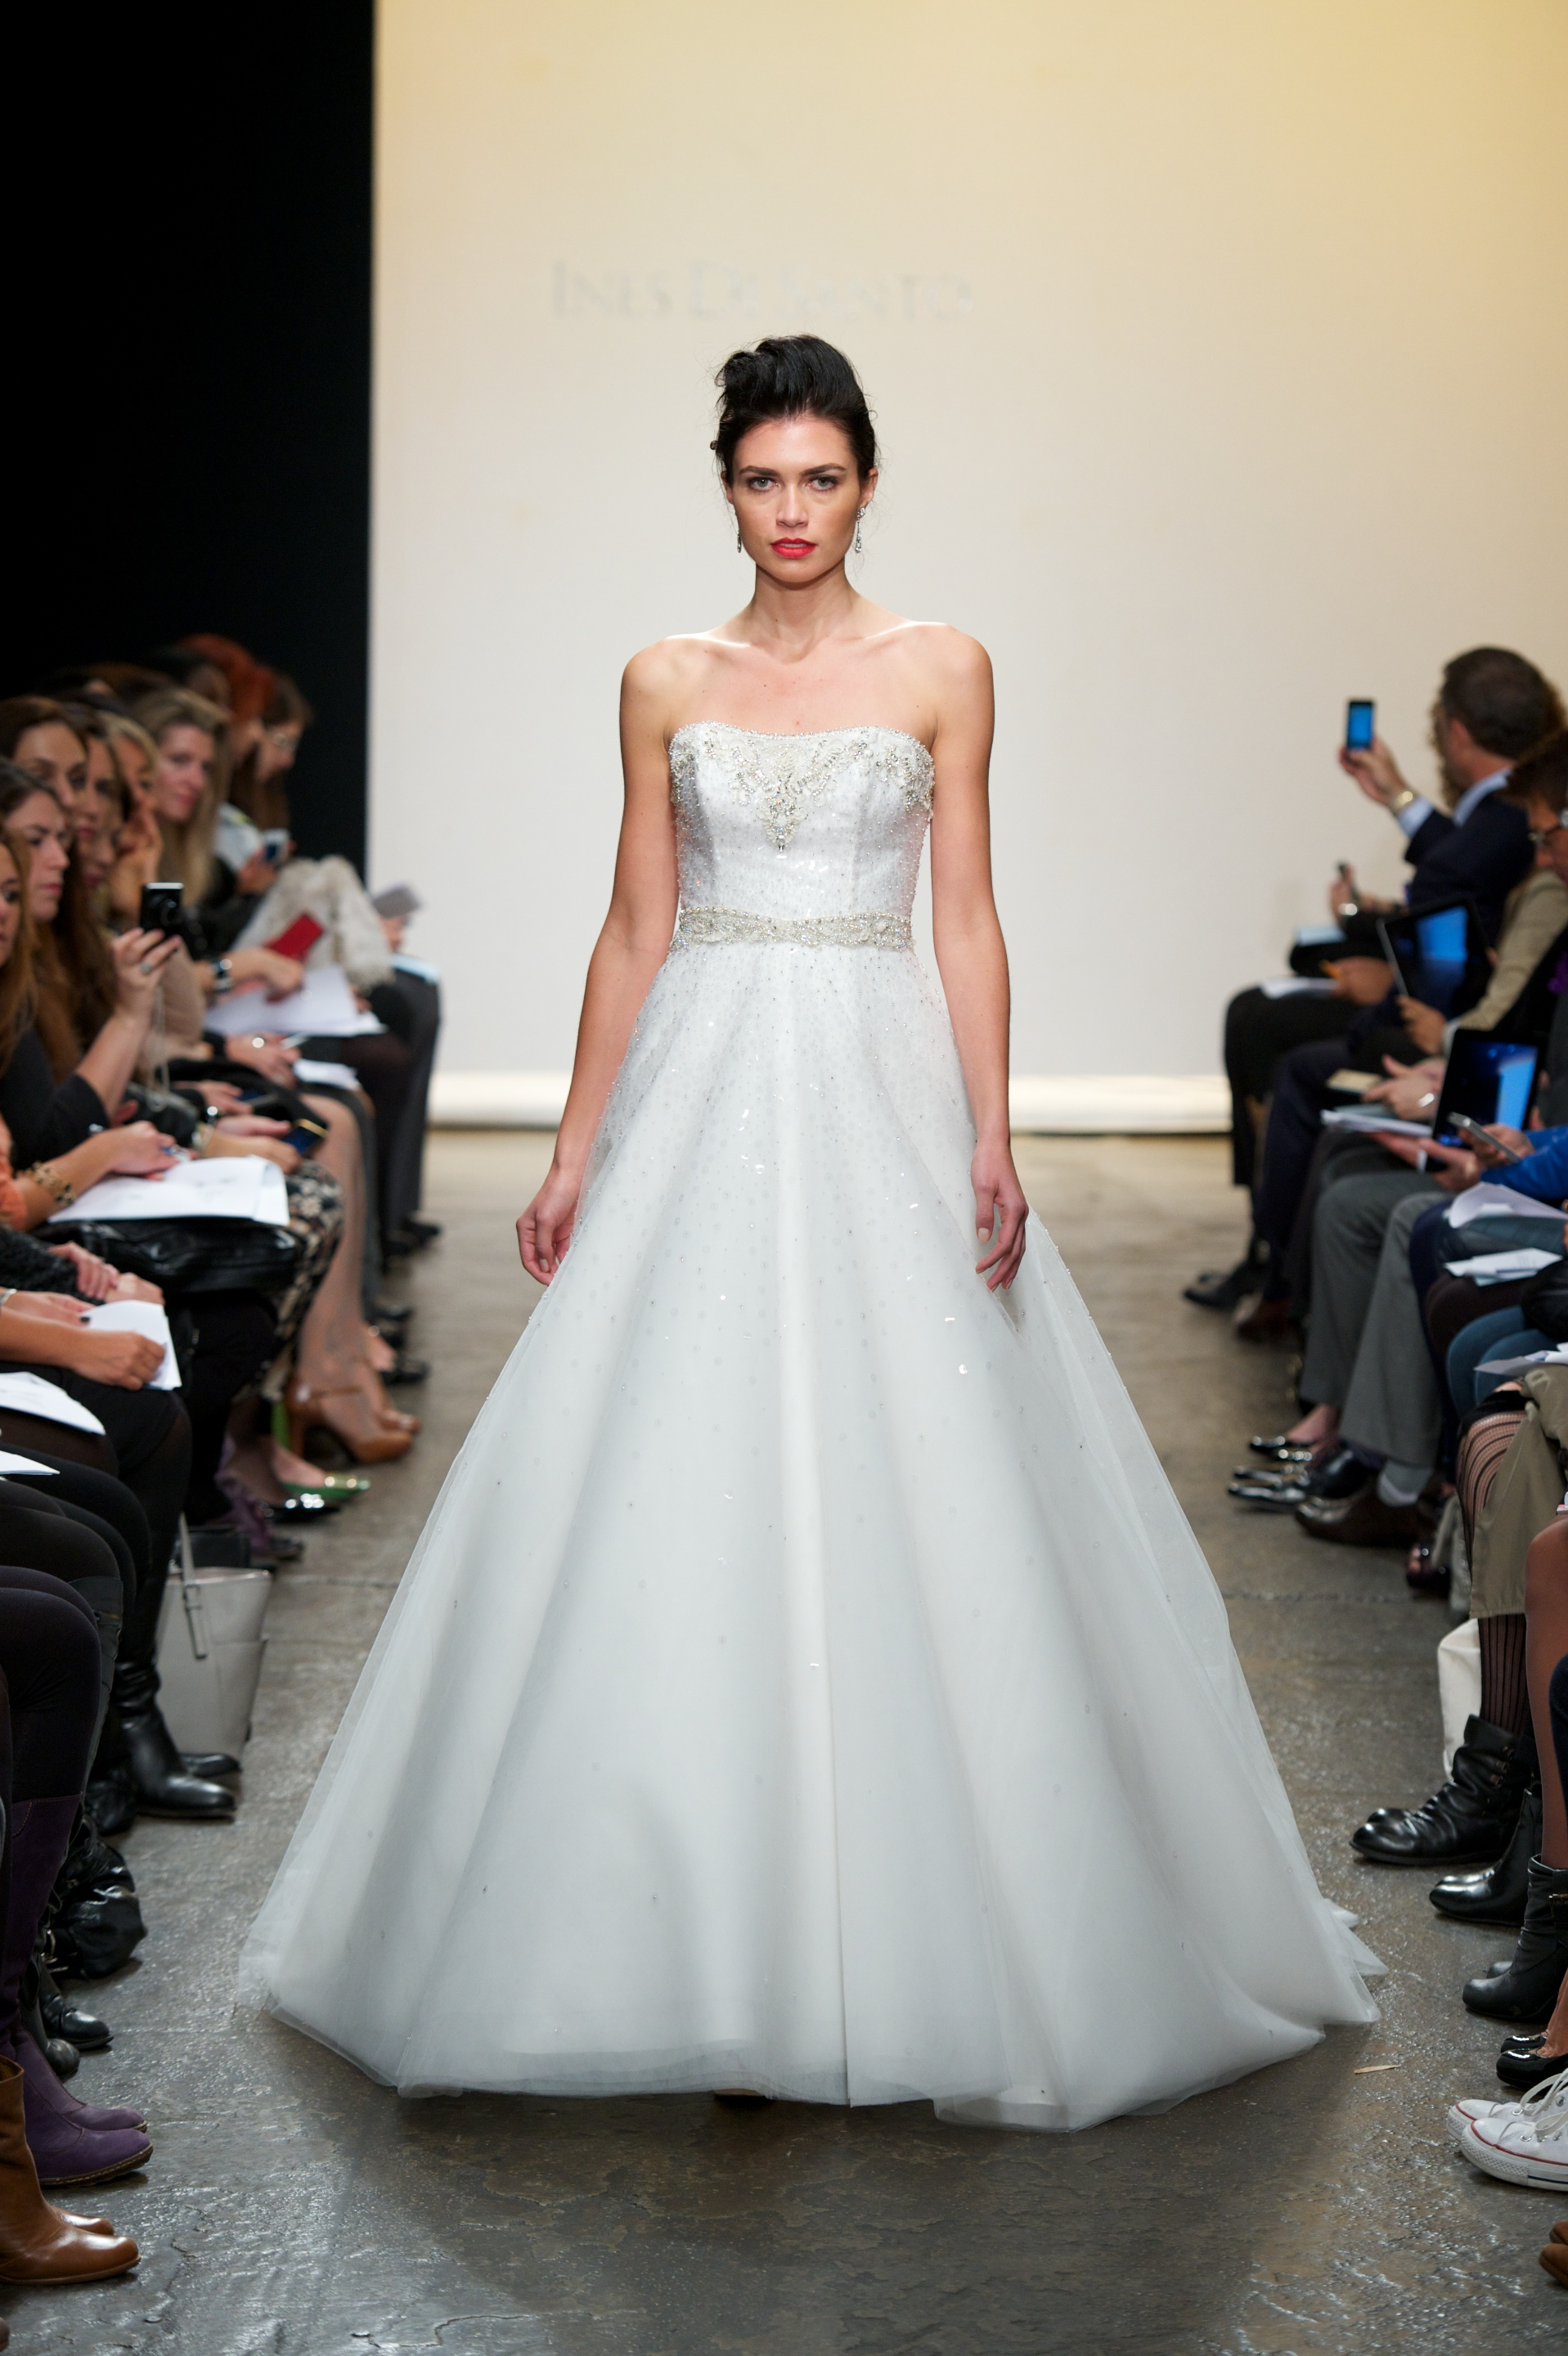 2013 wedding dress by ines di santo reale for Ines di santo wedding dress